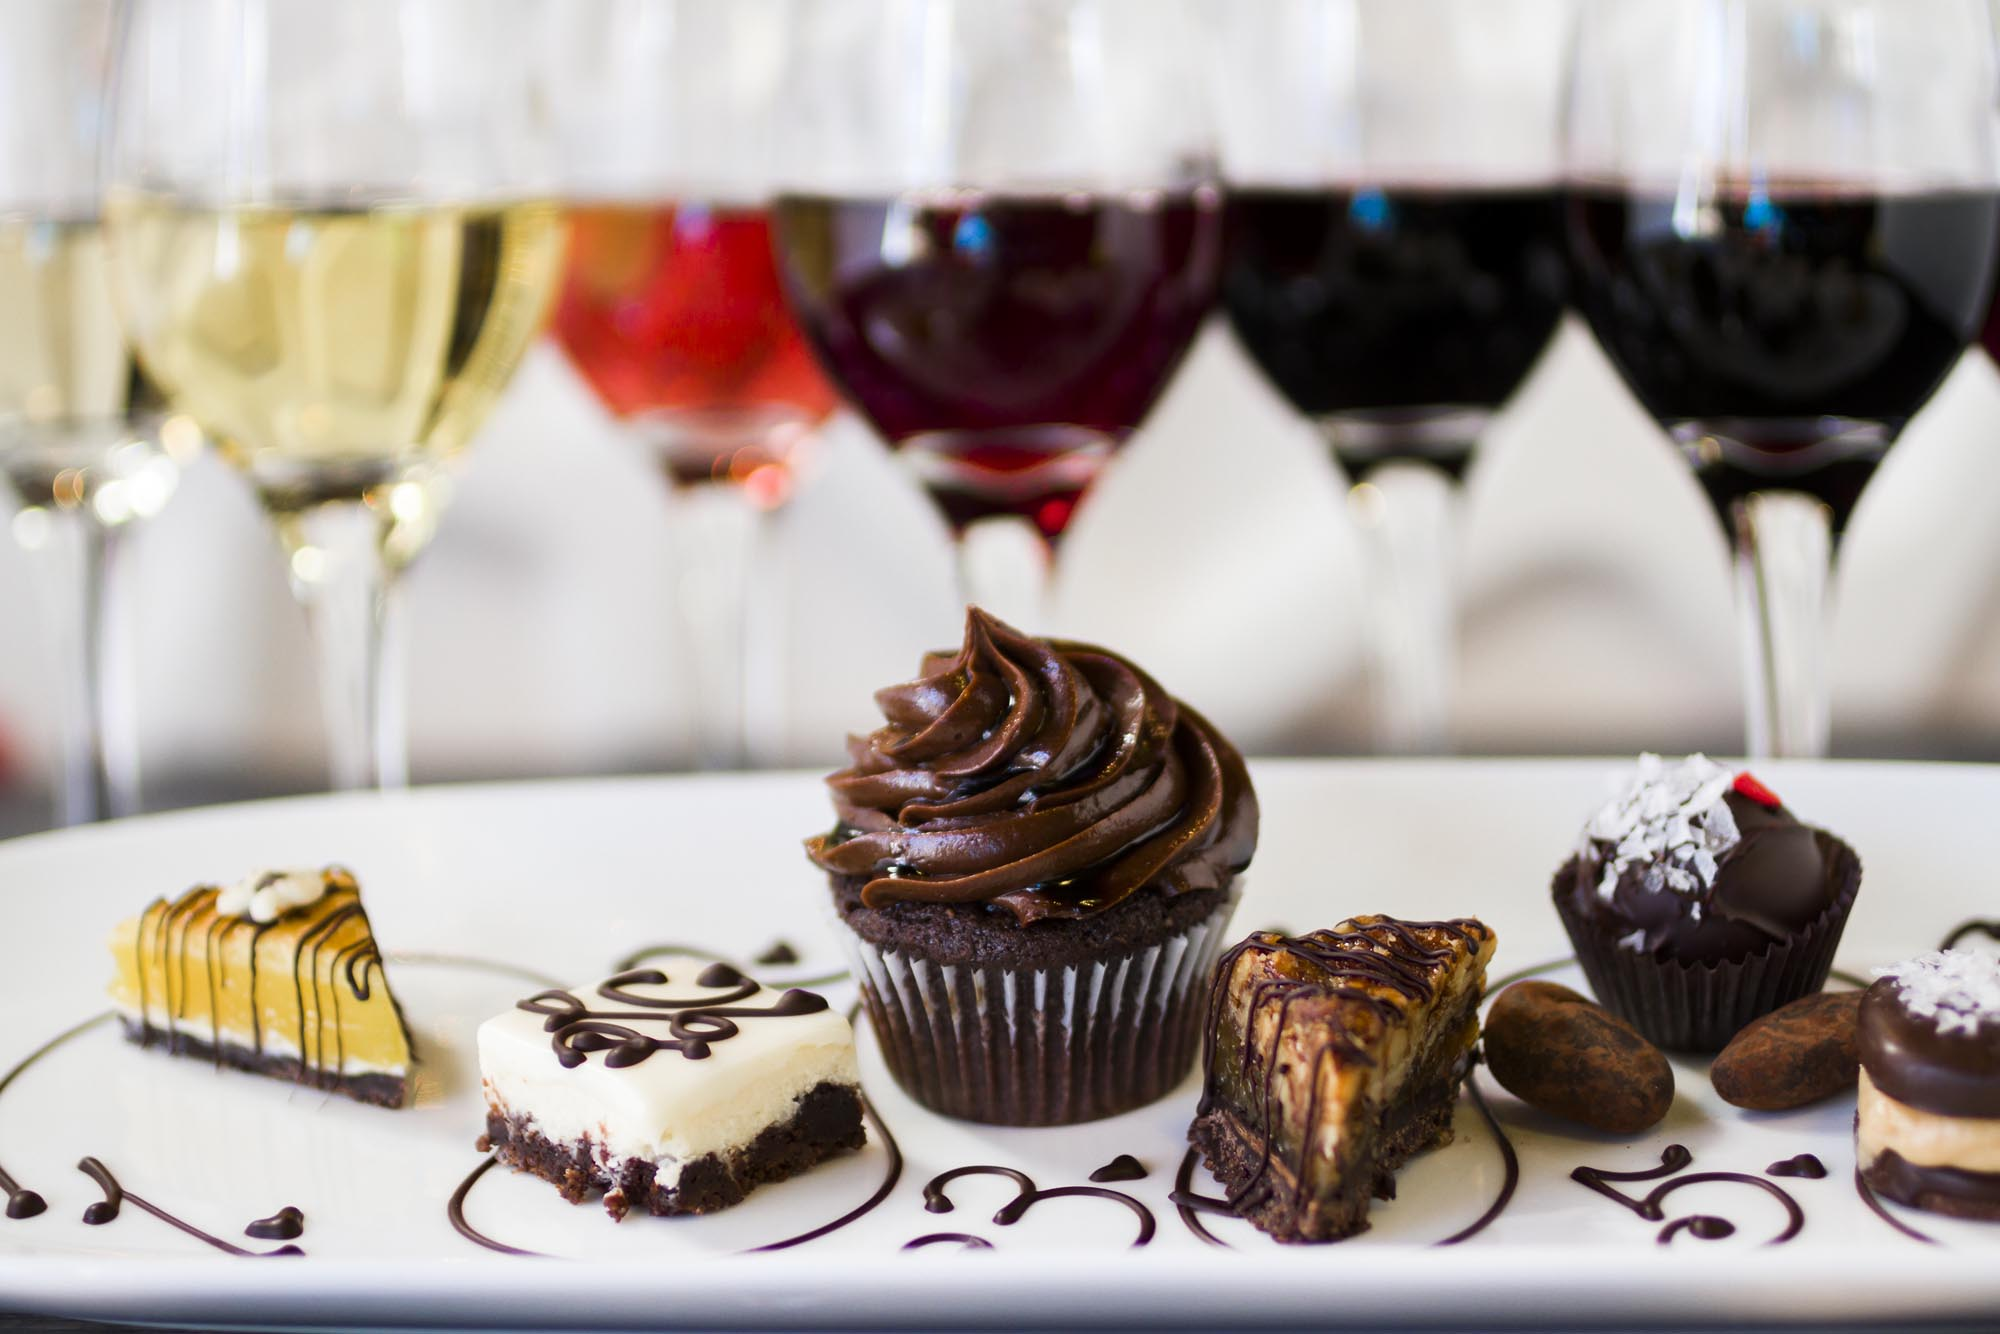 Pair Wine with Desserts for Add-on Sales